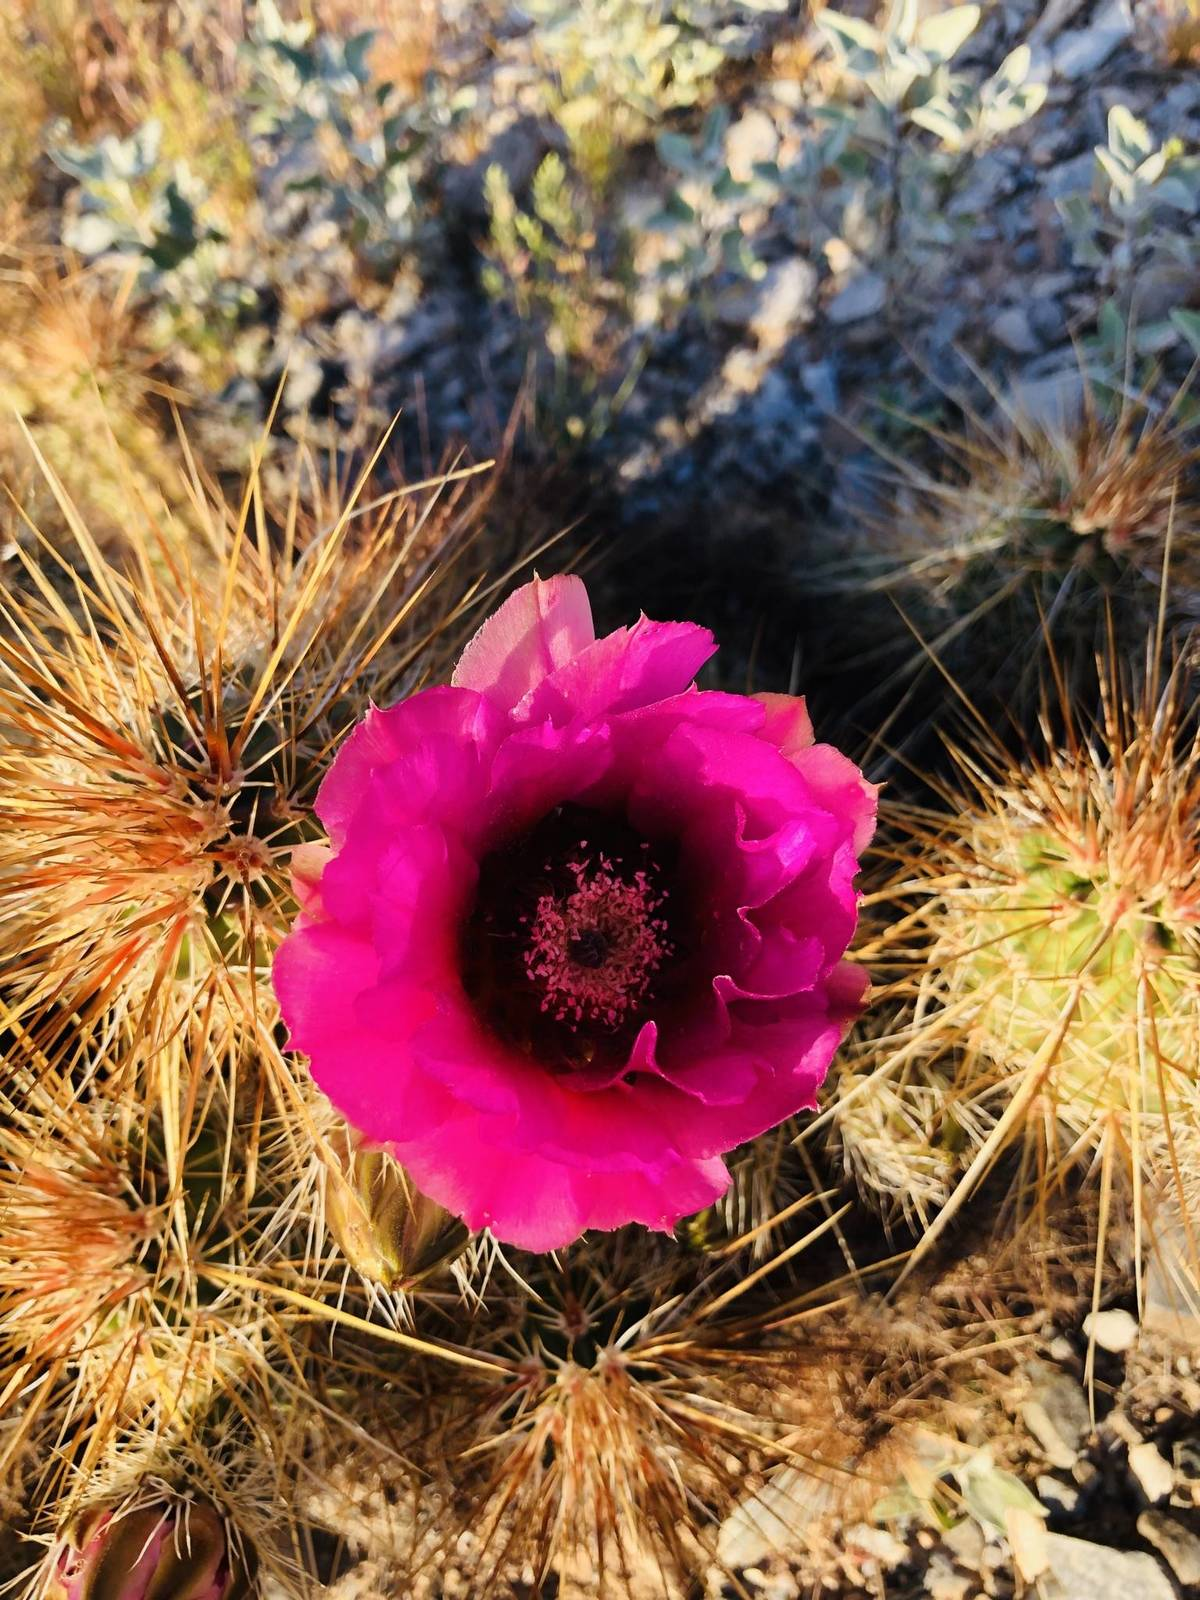 Springtime in the desert 2019